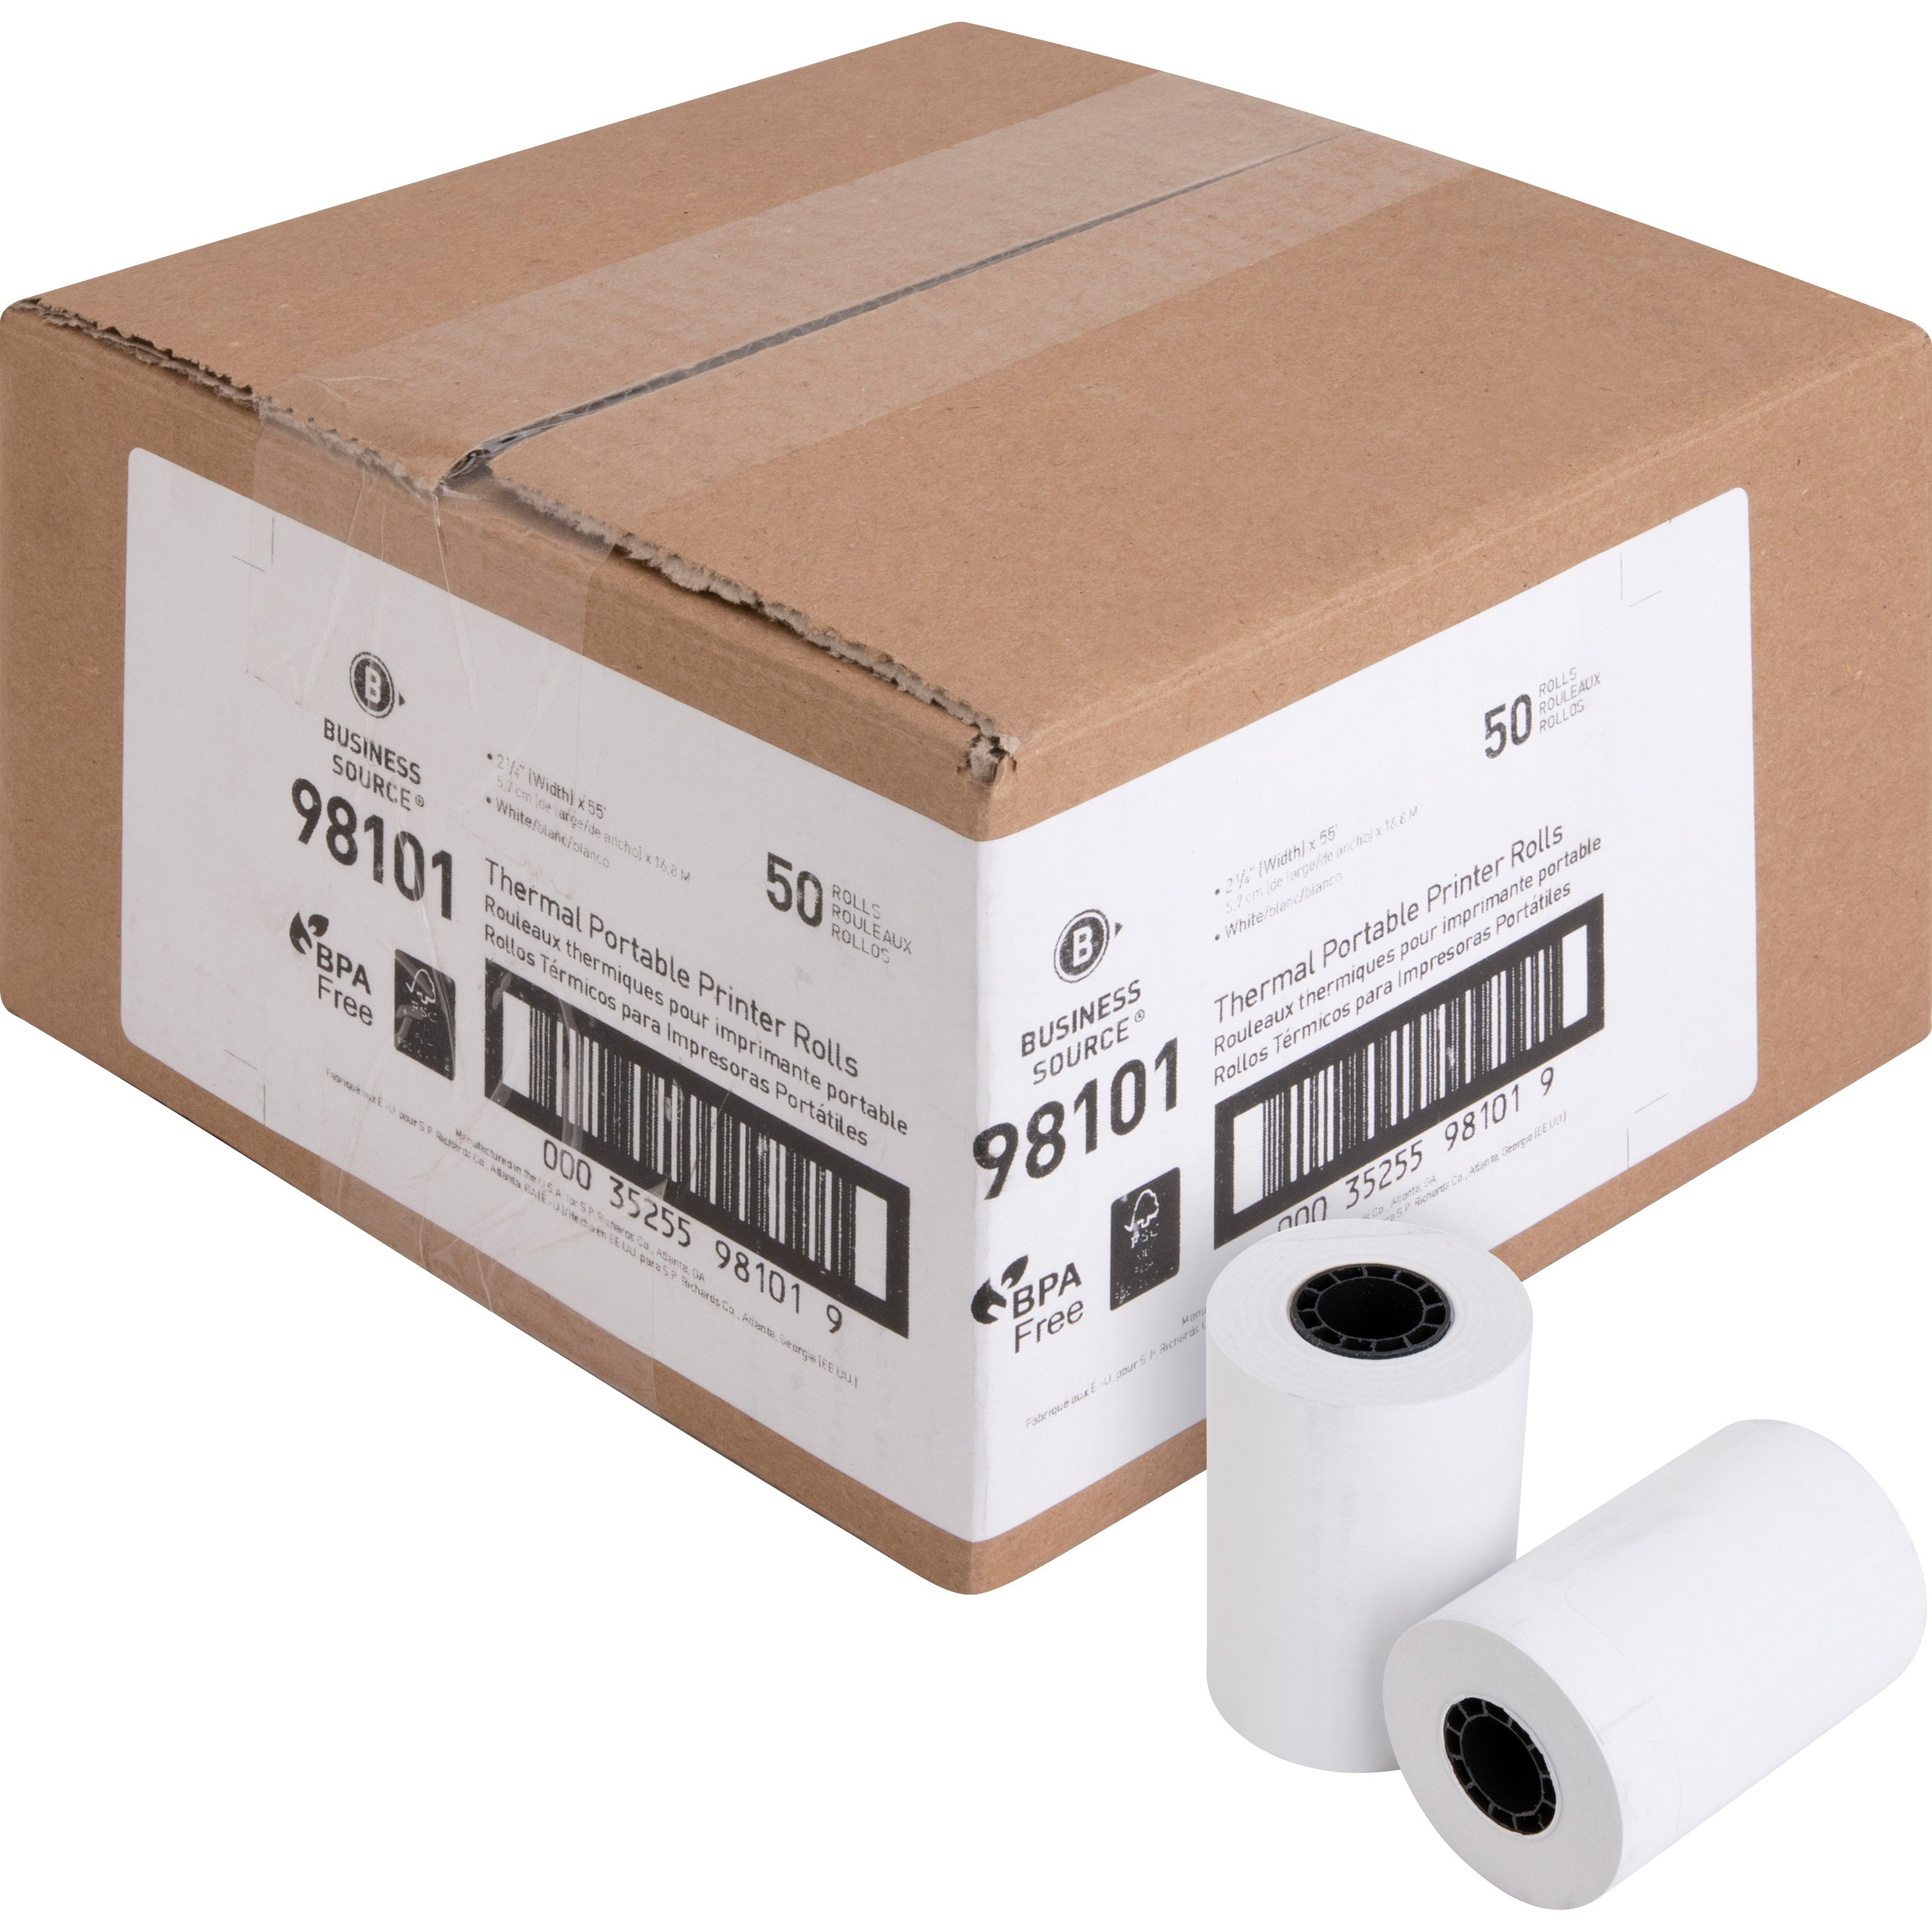 """Business Source, BSN98101, 2-1/4""""x55' POS Receipt Thermal Rolls, 50 / Carton, White"""